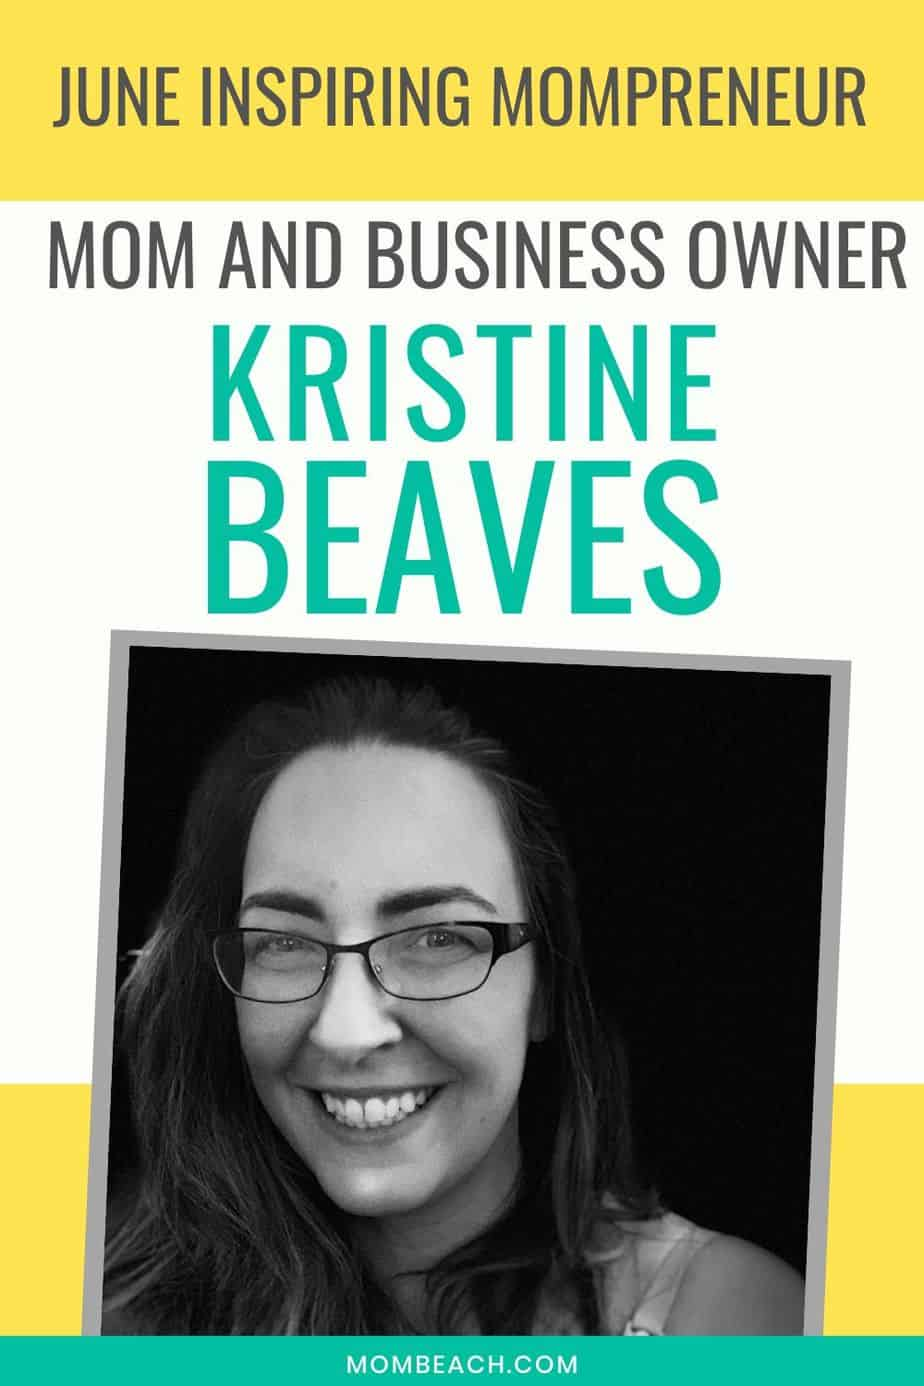 Kristine Beaves is a mom of two and a successful business owner of Kit Blogs. We are proud to make her our June Inspiring Mompreneur. Do you have what it takes to be an inspiring mompreneur too? Contact me today to get considered. Thank you! #kristinebeaves #kitblogs #inspringmompreneur